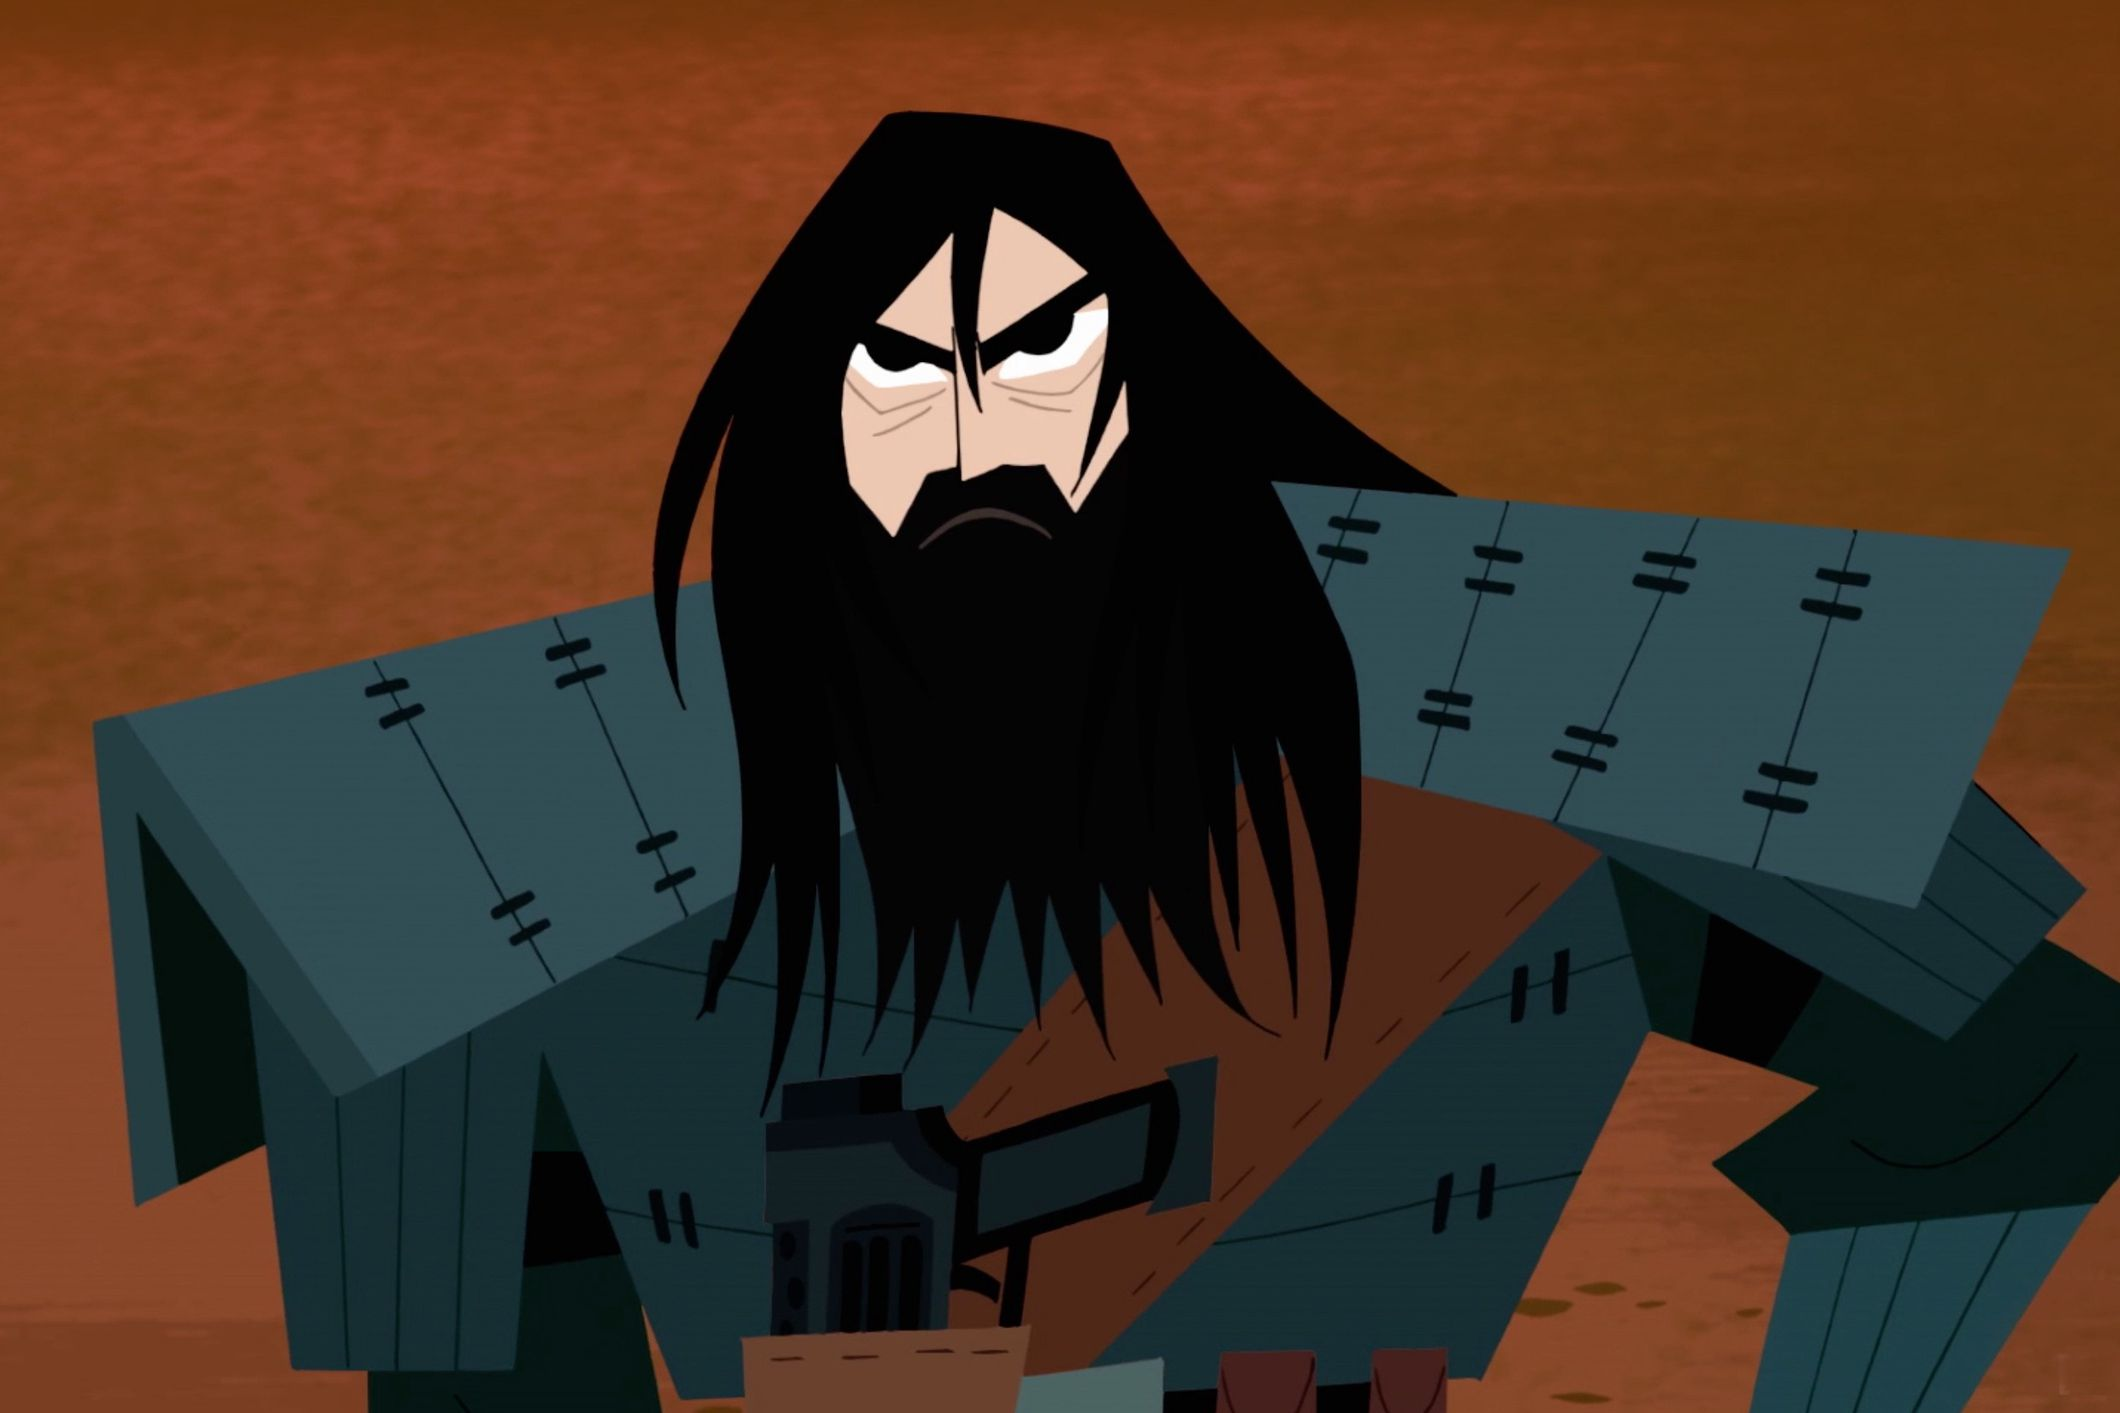 Samurai Jack Wallpapers & Images In High Quality - All HD